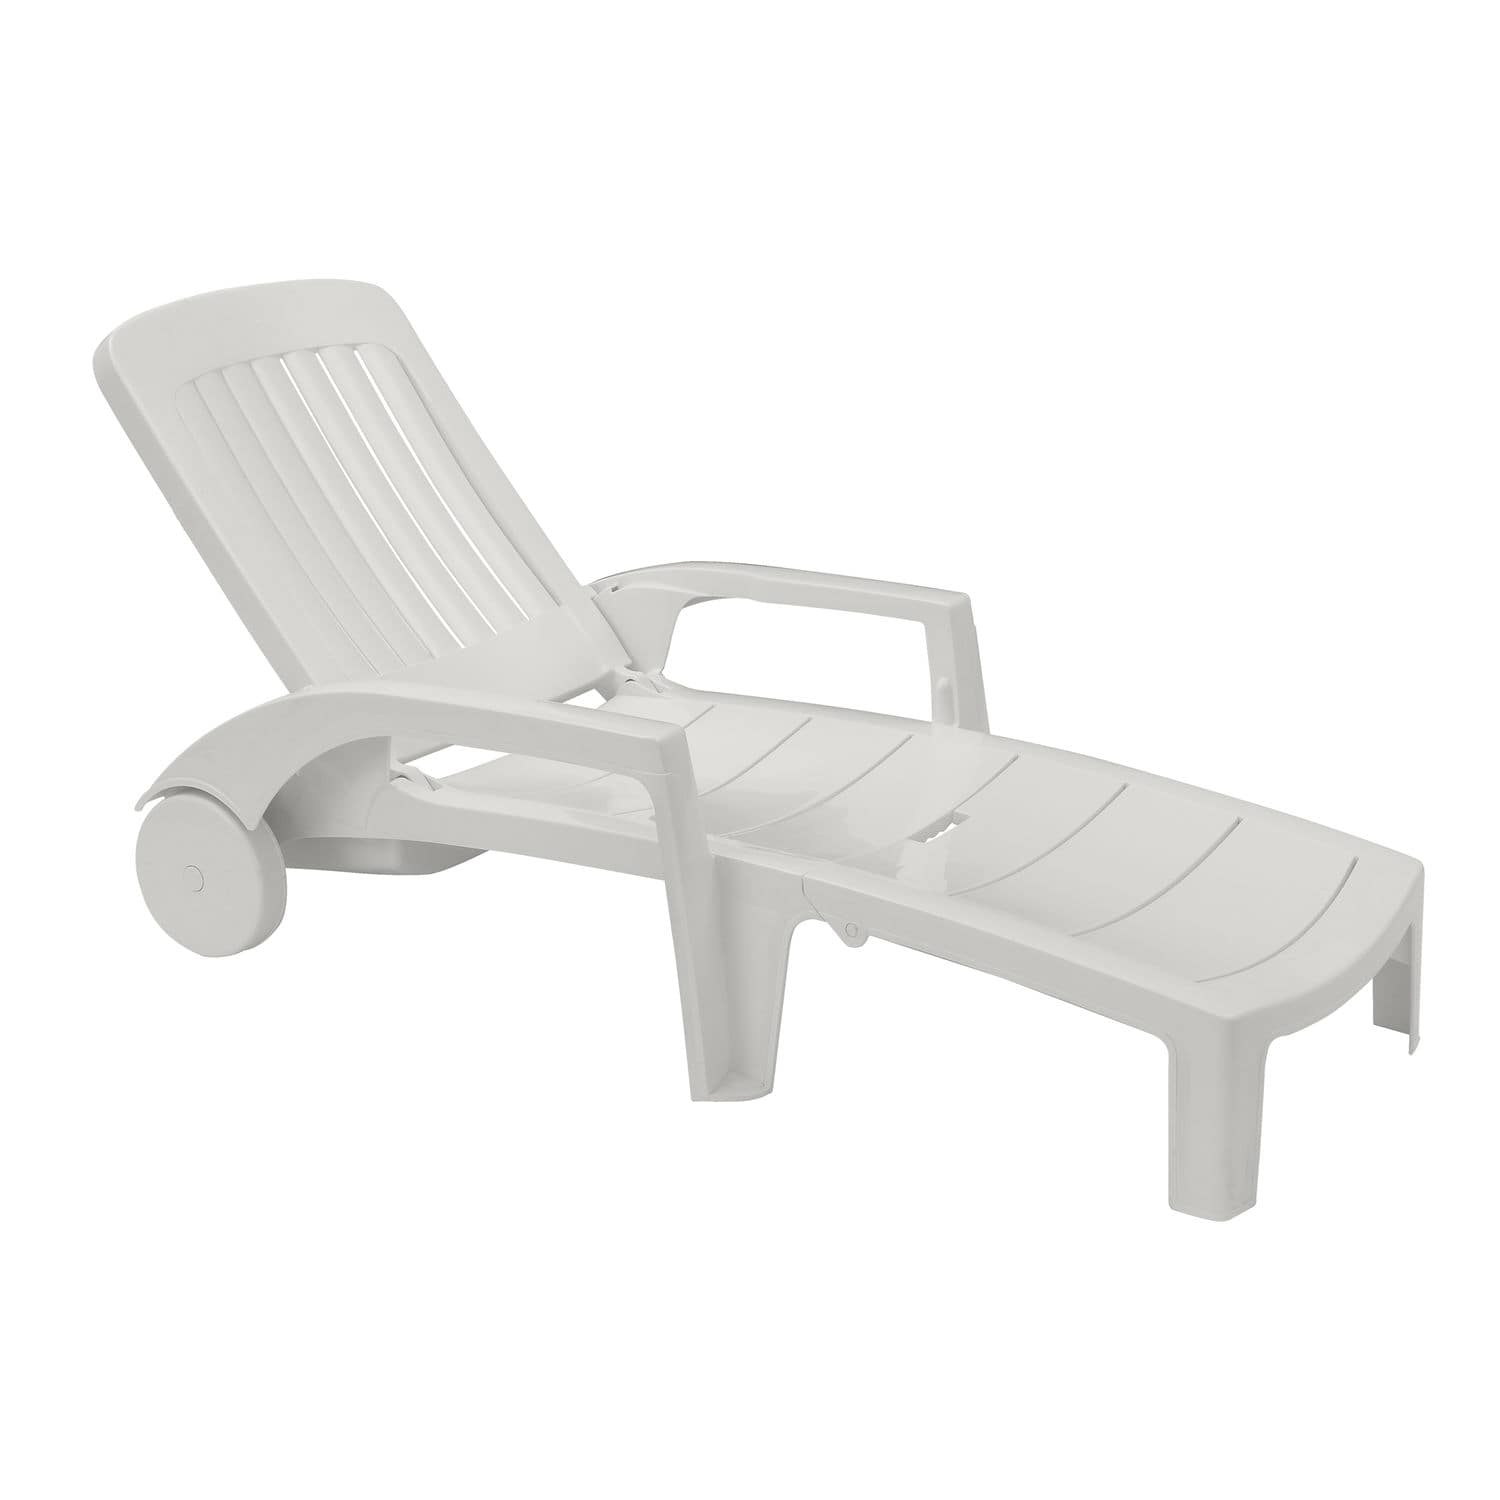 Contemporary sun lounger residential MIAMI GROSFILLEX fenªtres